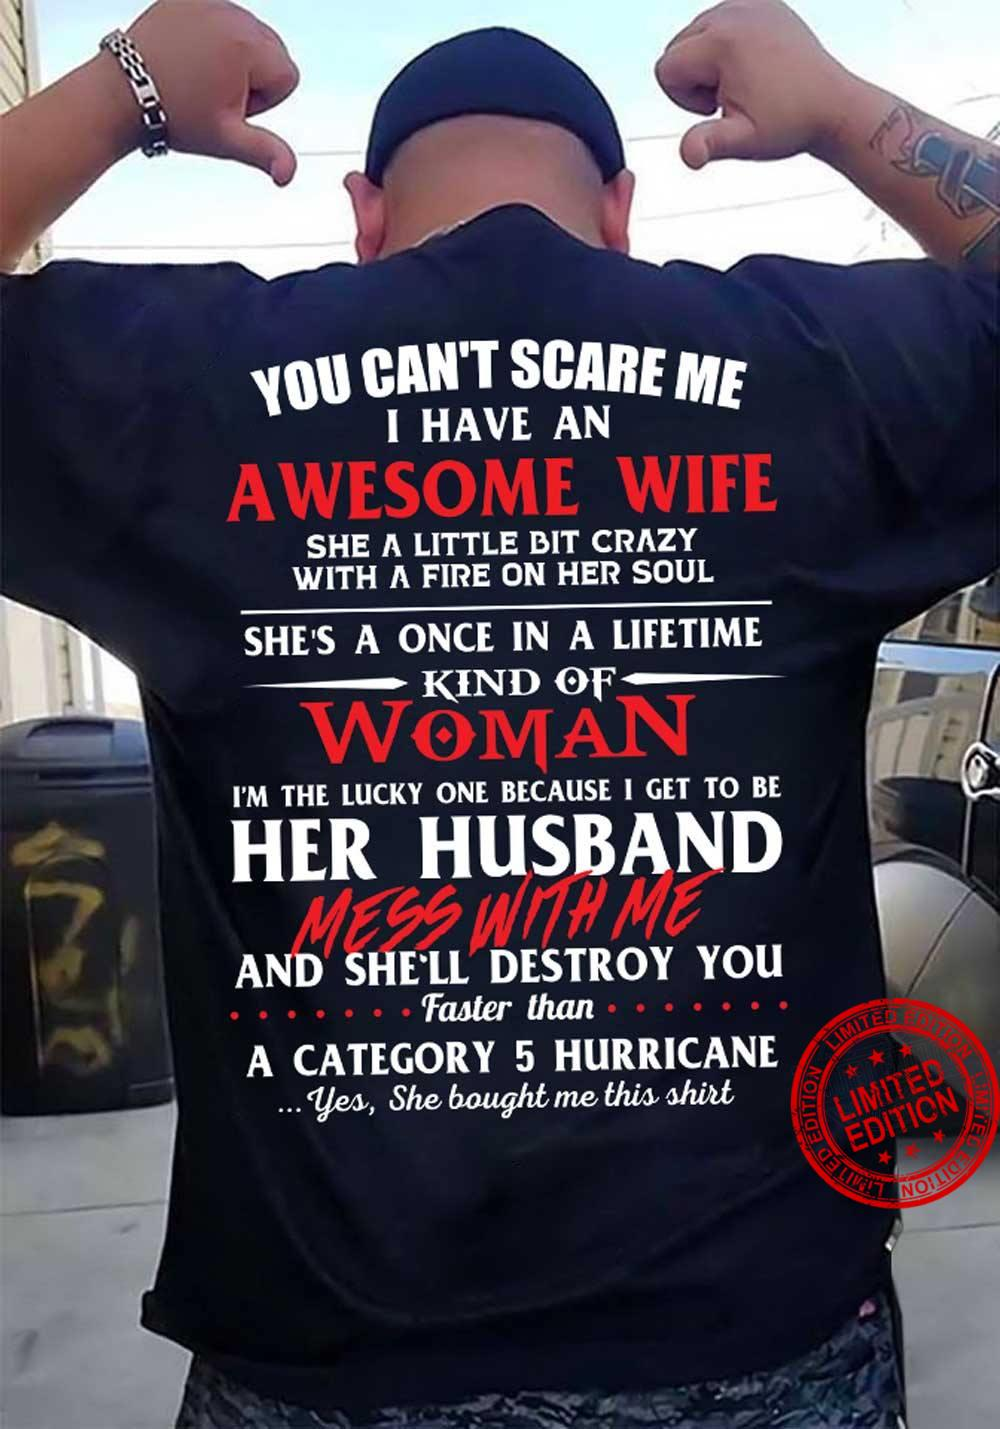 You Can't Scare Me I Have An Awesome Wife She A Little Bit Crazy With A Fire On Her Soul She's A Once In A Lifetime Kind Of Woman Shirt